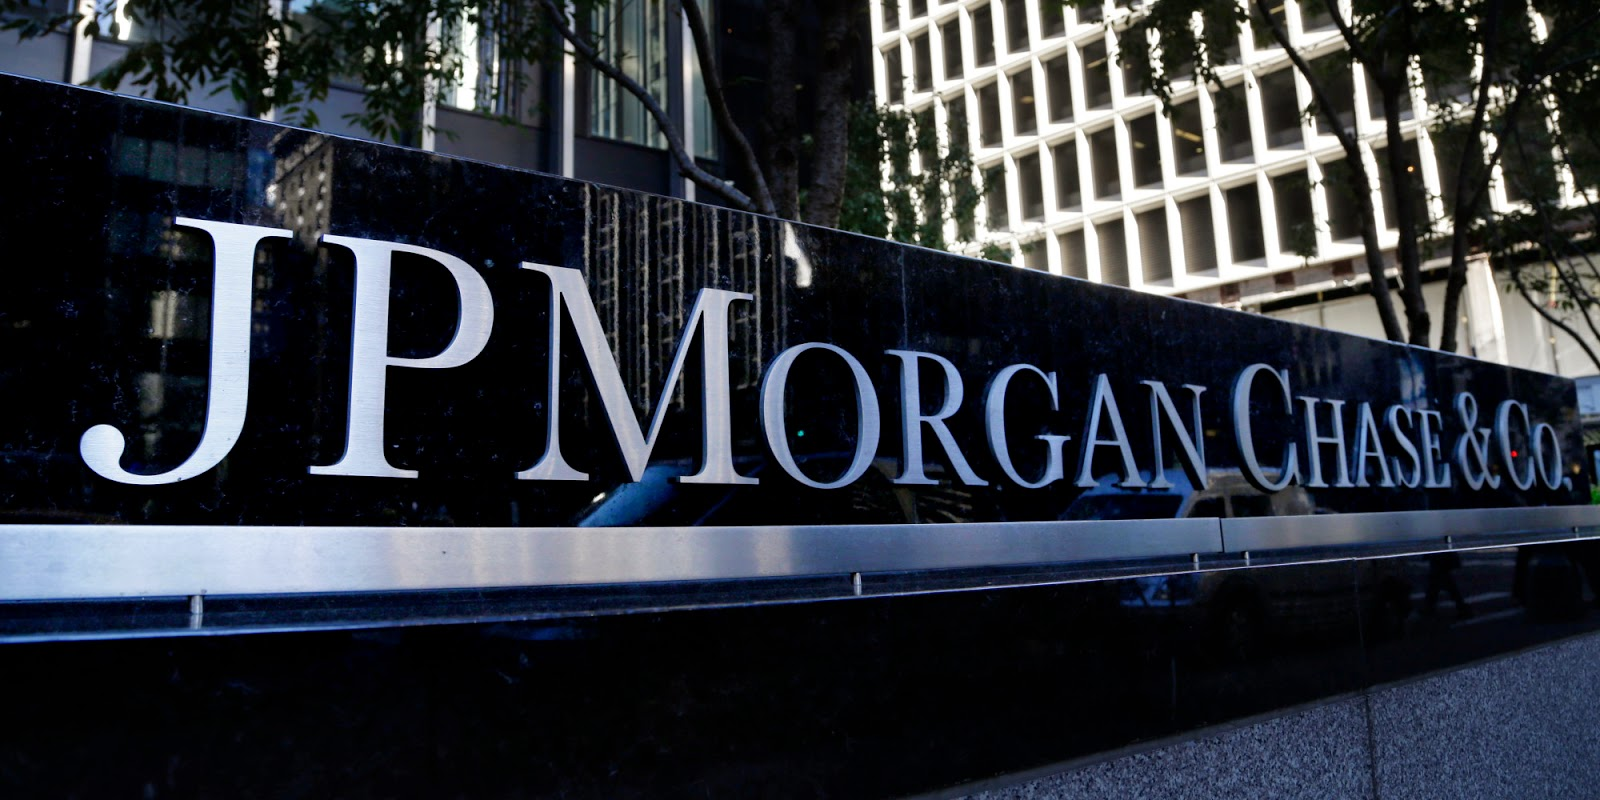 jp morgan chase is america s largest bank right for you